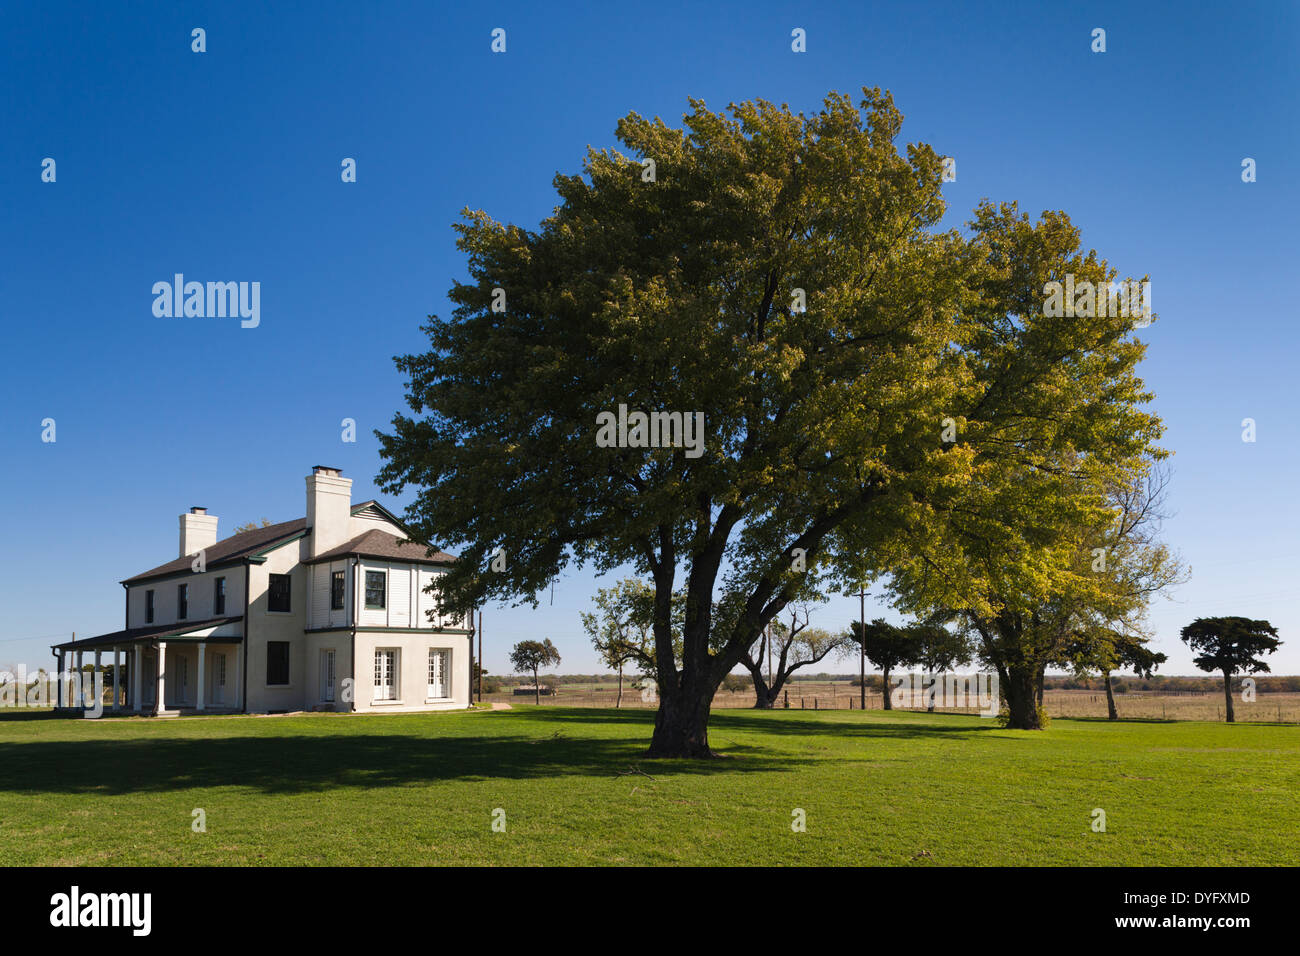 USA, Oklahoma, El Reno, Fort Reno, former Indian Wars military outpost and POW camp for German prisoners in WWII - Stock Image